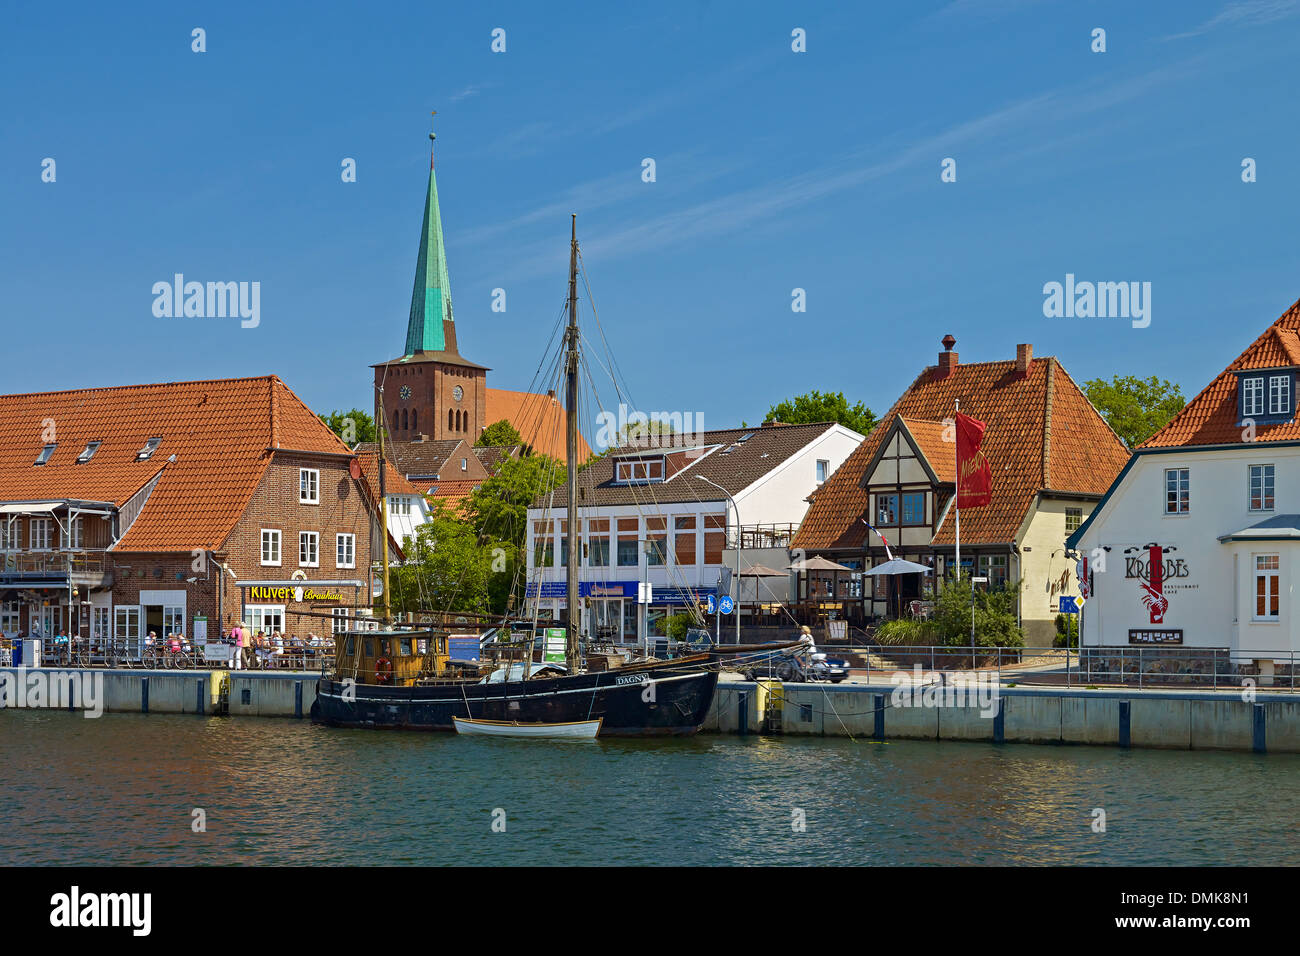 neustadt in holstein stockfotos neustadt in holstein bilder alamy. Black Bedroom Furniture Sets. Home Design Ideas